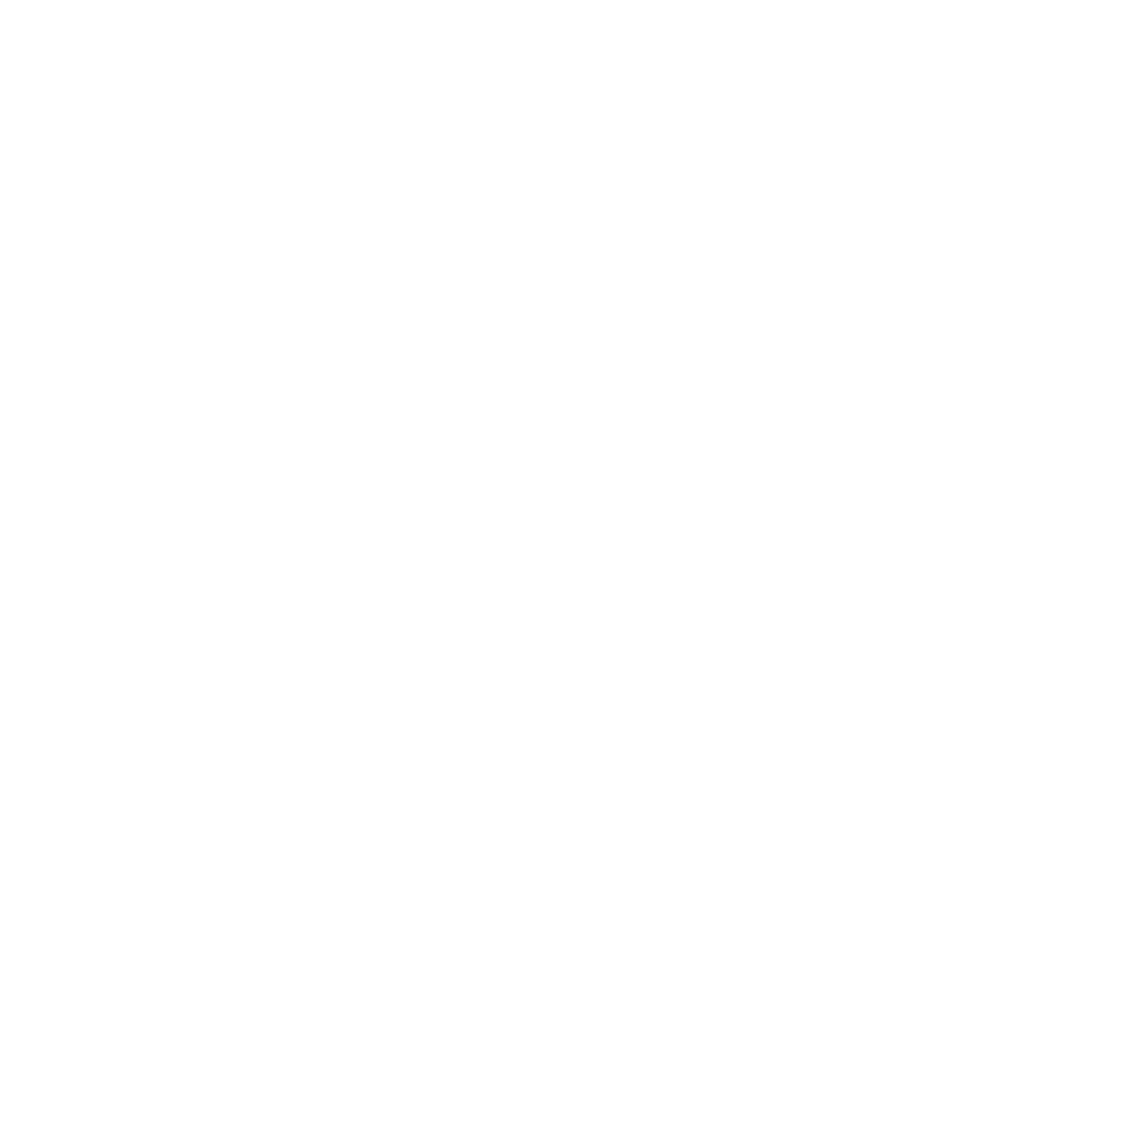 The Virginia Gentlemen